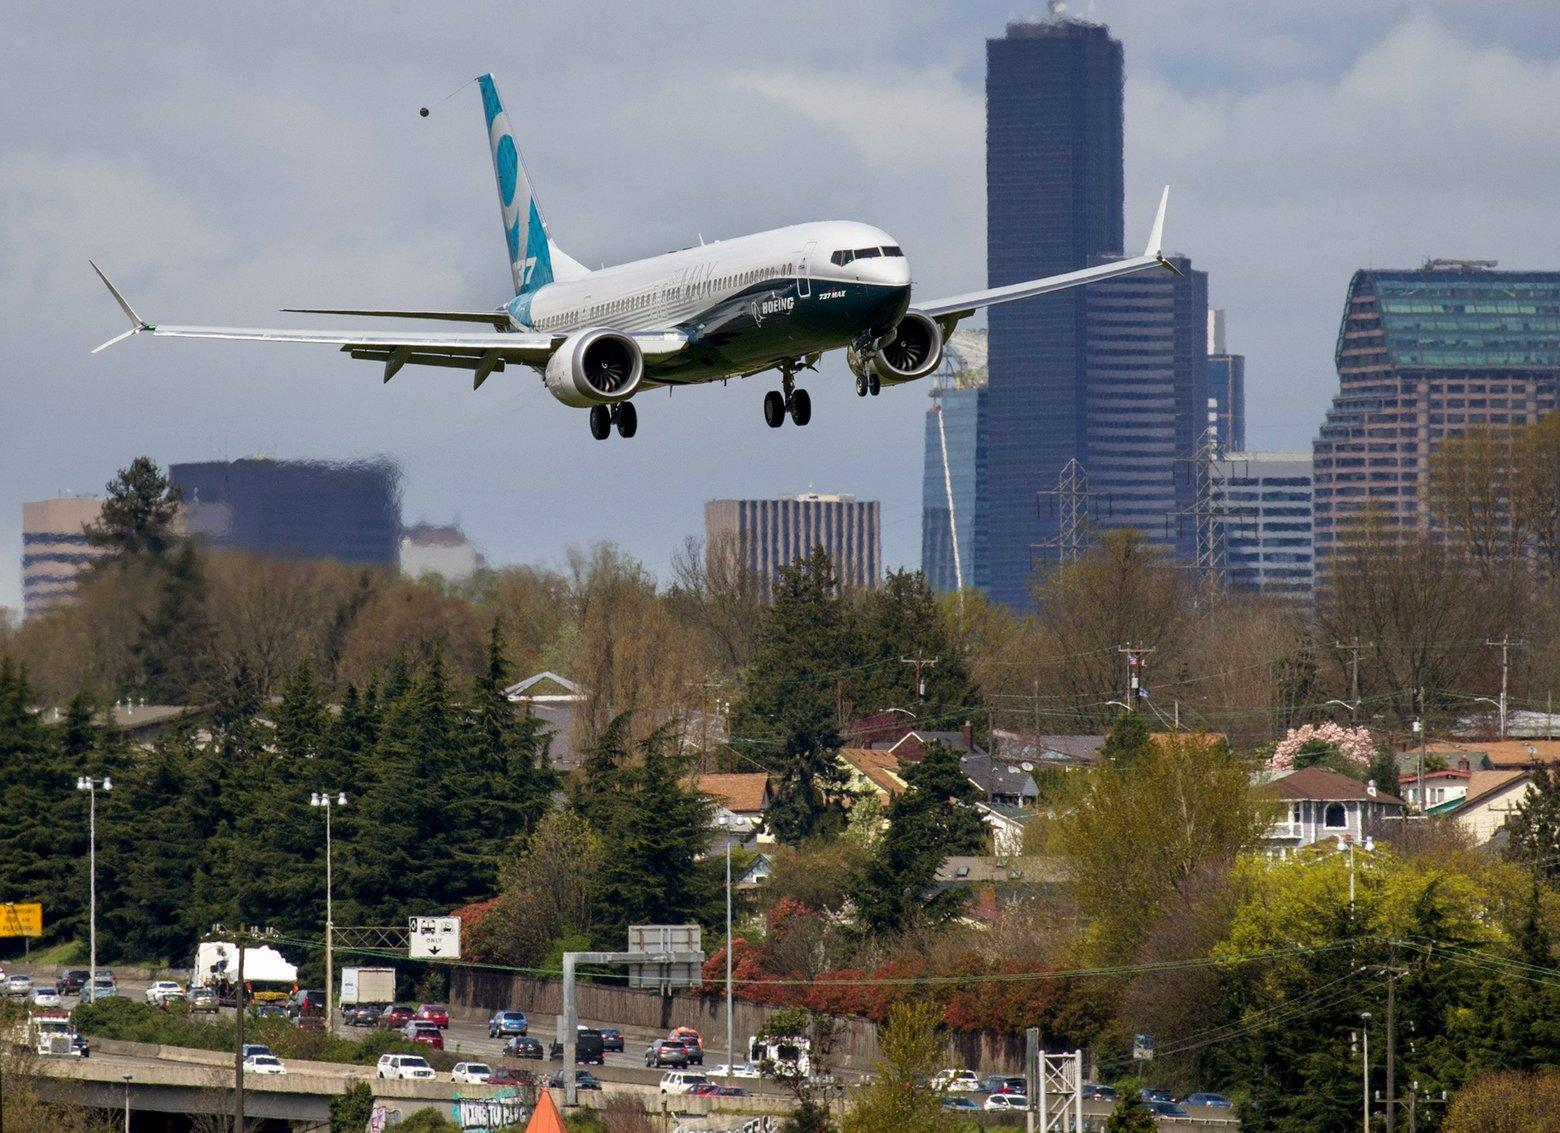 FAA evaluates a potential design flaw on Boeing's 737 MAX